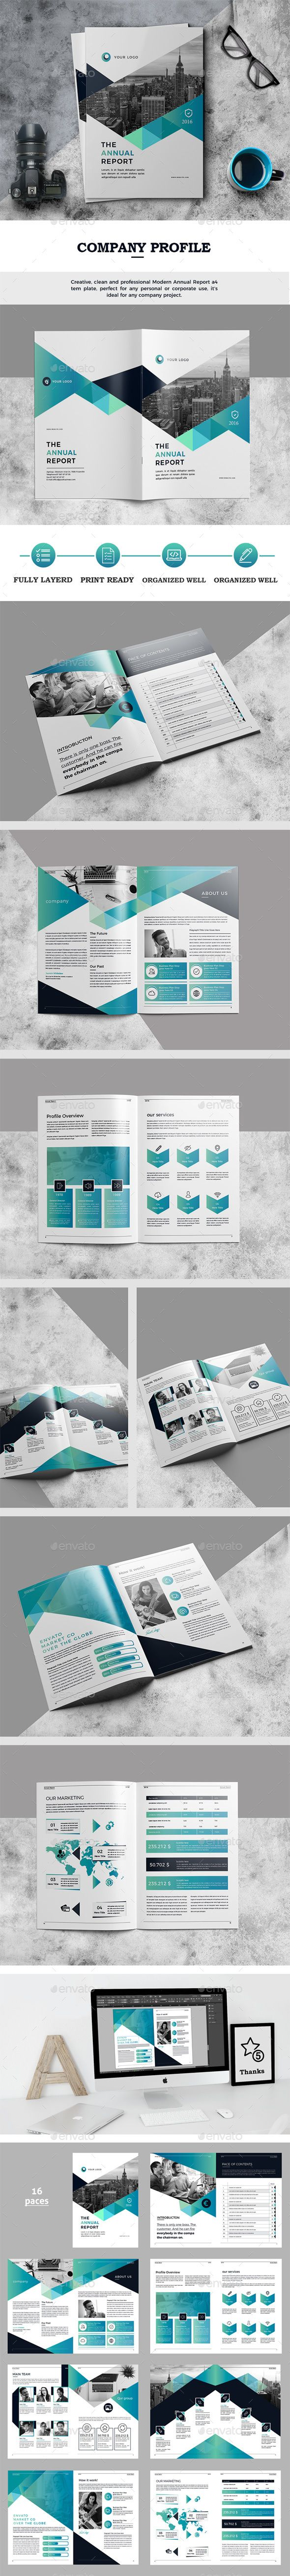 Brochure — InDesign INDD #brand #light • Download ➝ https://graphicriver.net/item/brochure/19060211?ref=pxcr